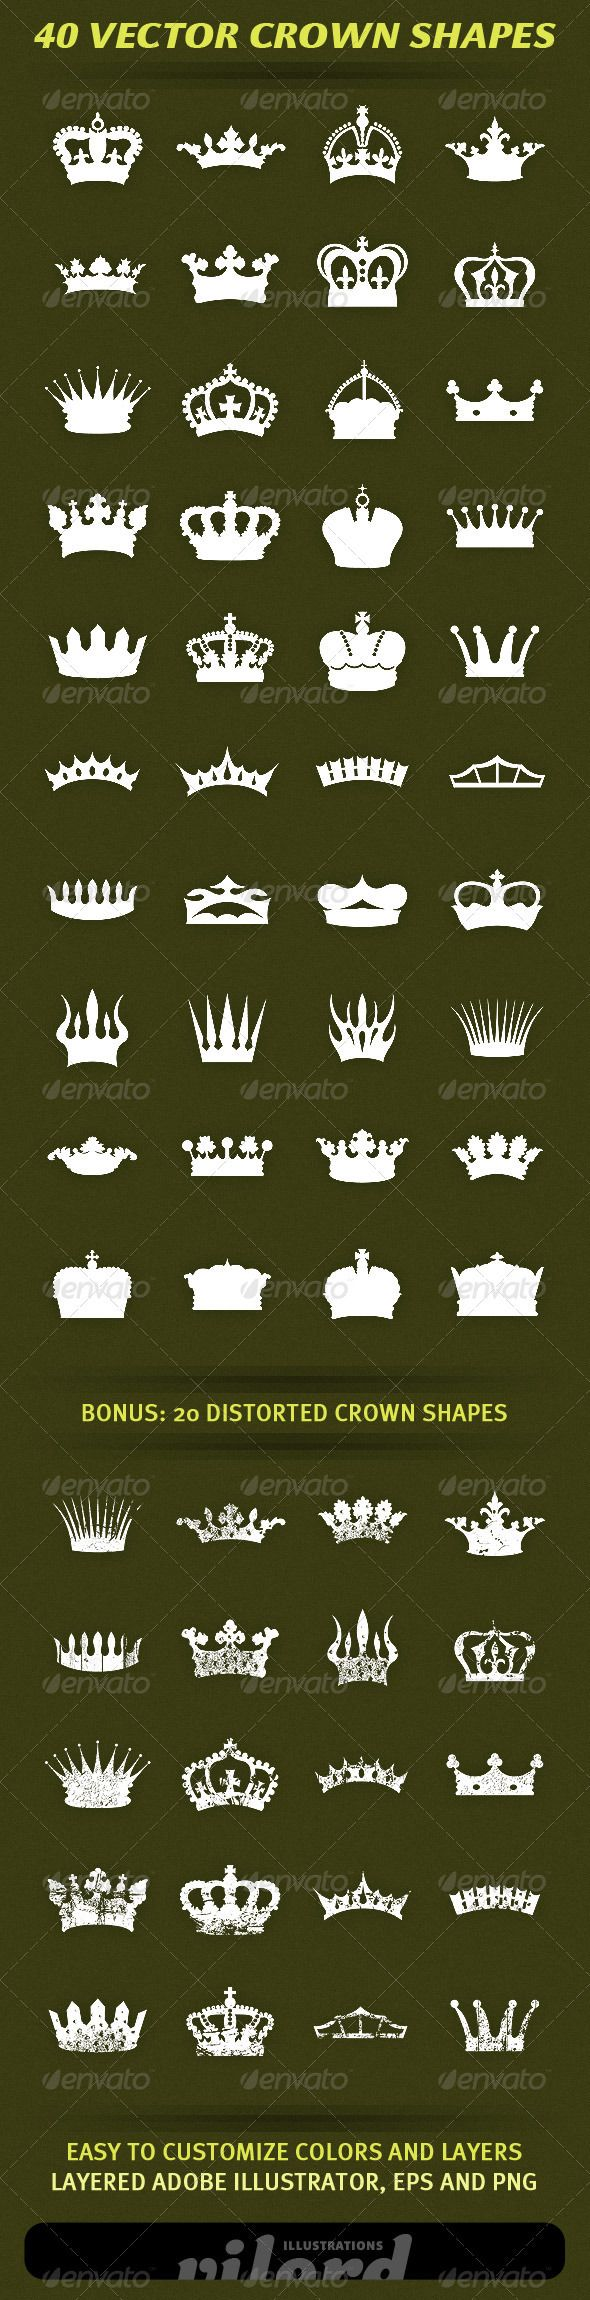 "40 Vector Crown Shapes #GraphicRiver Set of 40 vector vintage crown shapes for your graphic designs. Great for print or web design! Enjoy Adobe Illustrator is main file and ""fully editable"". Also transparent PNG and EPS files in the package. BONUS : 20 distorted heraldry crown shapes also included. Created: 17March12 GraphicsFilesIncluded: TransparentPNG #VectorEPS #AIIllustrator Layered: Yes MinimumAdobeCSVersion: CS Tags: crests #crowns #decoration #heraldry #ornaments #print #retro…"